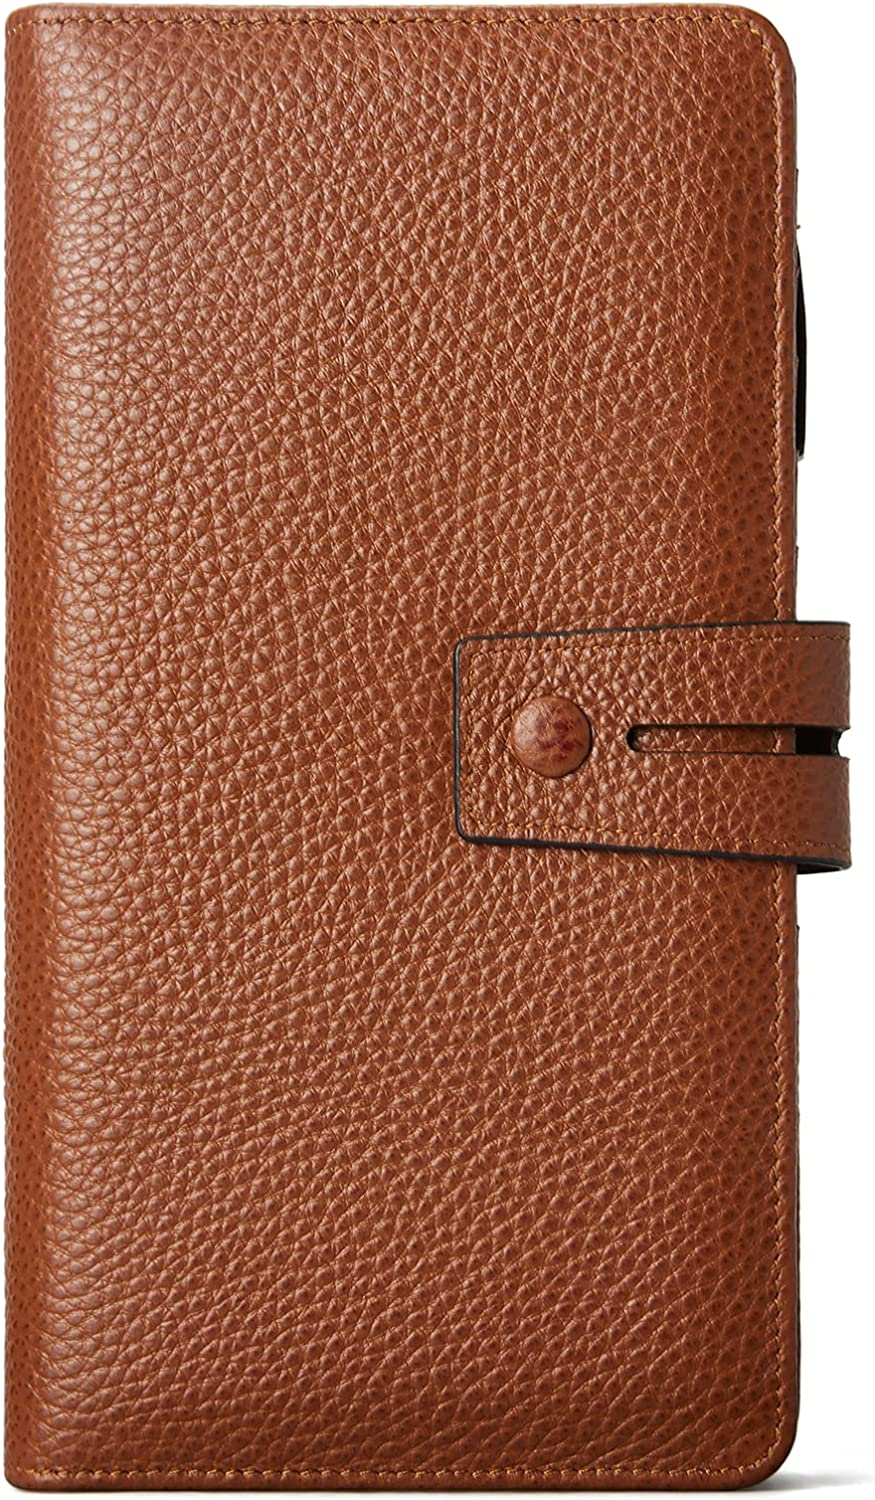 BOSTANTEN Womens Wallet Genuine Leather Translated Wallets Large 100% quality warranty! Capacity C